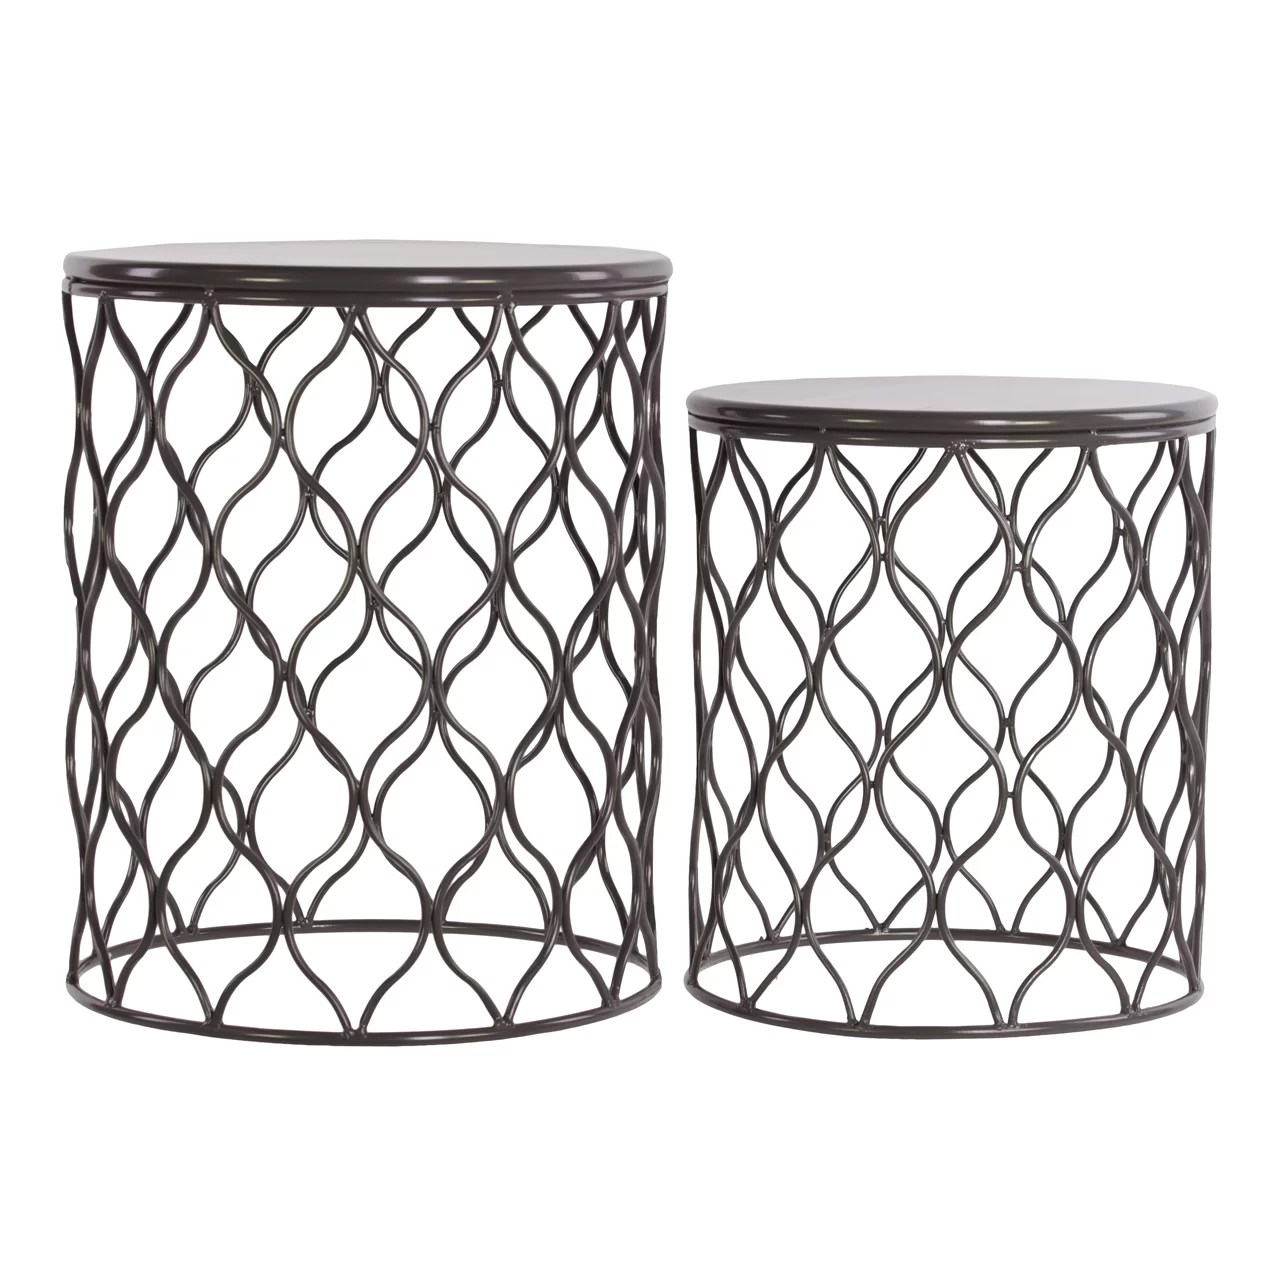 2 Piece Metal Round End Table Set